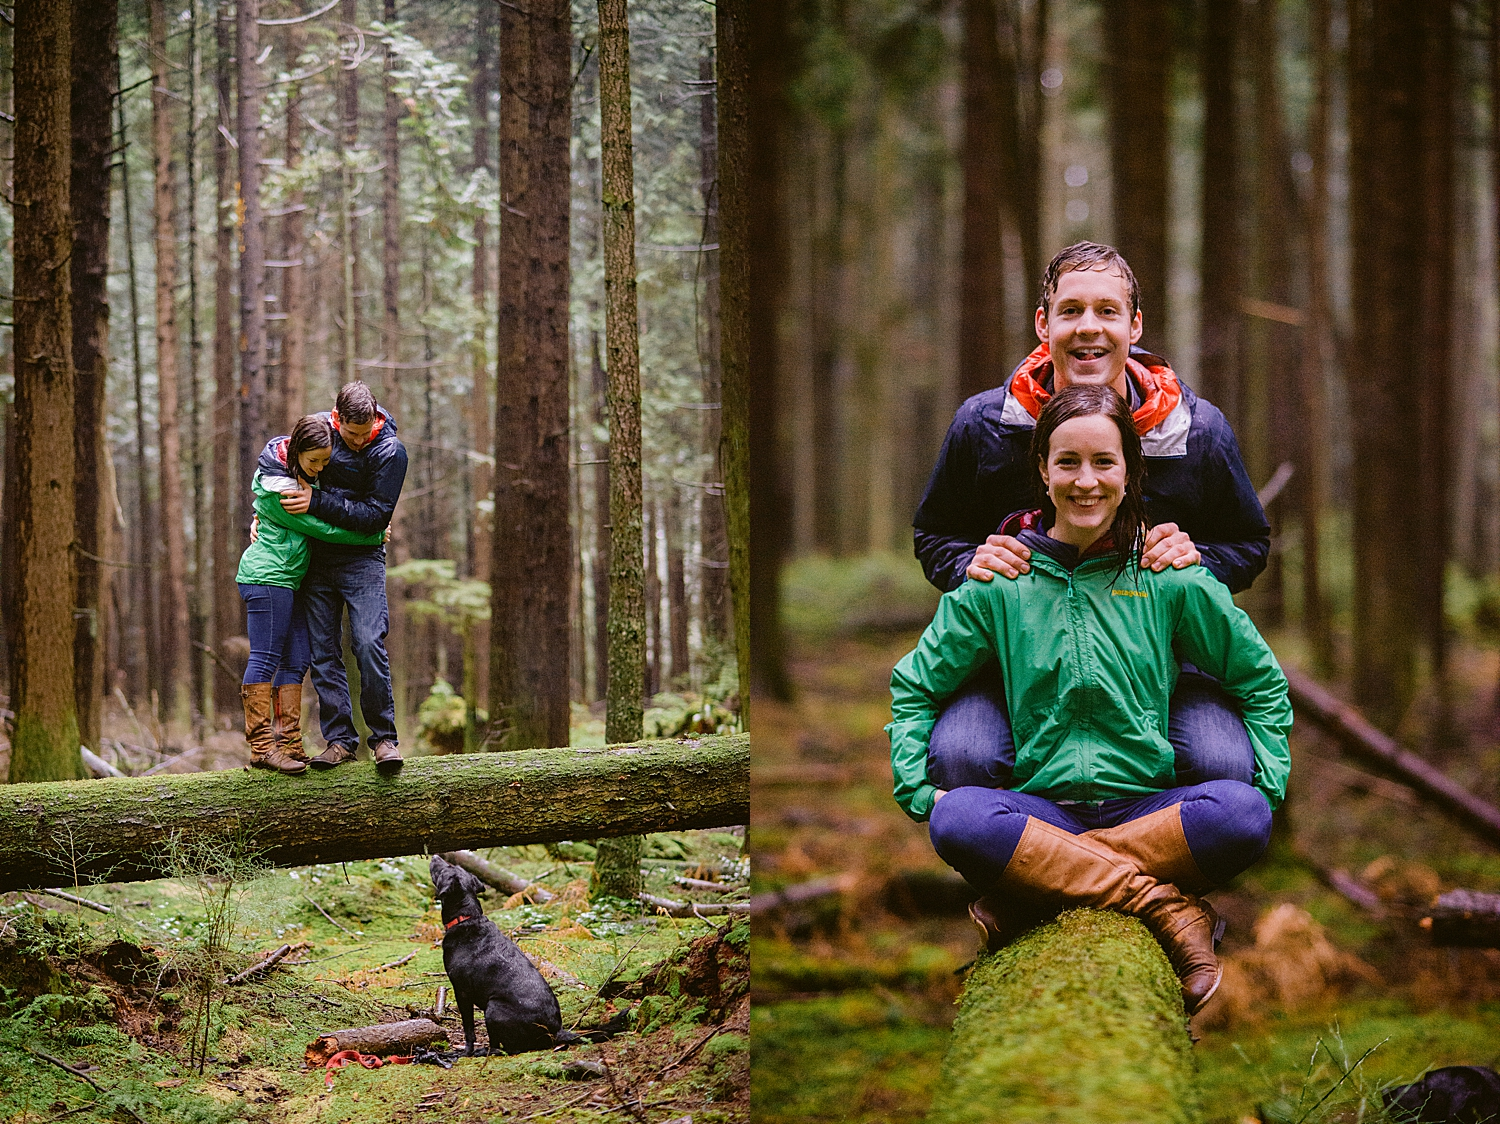 british columbia - pacific spirit park - engagement shoot - vancouver b.c.- maylies lang photography -17.jpg